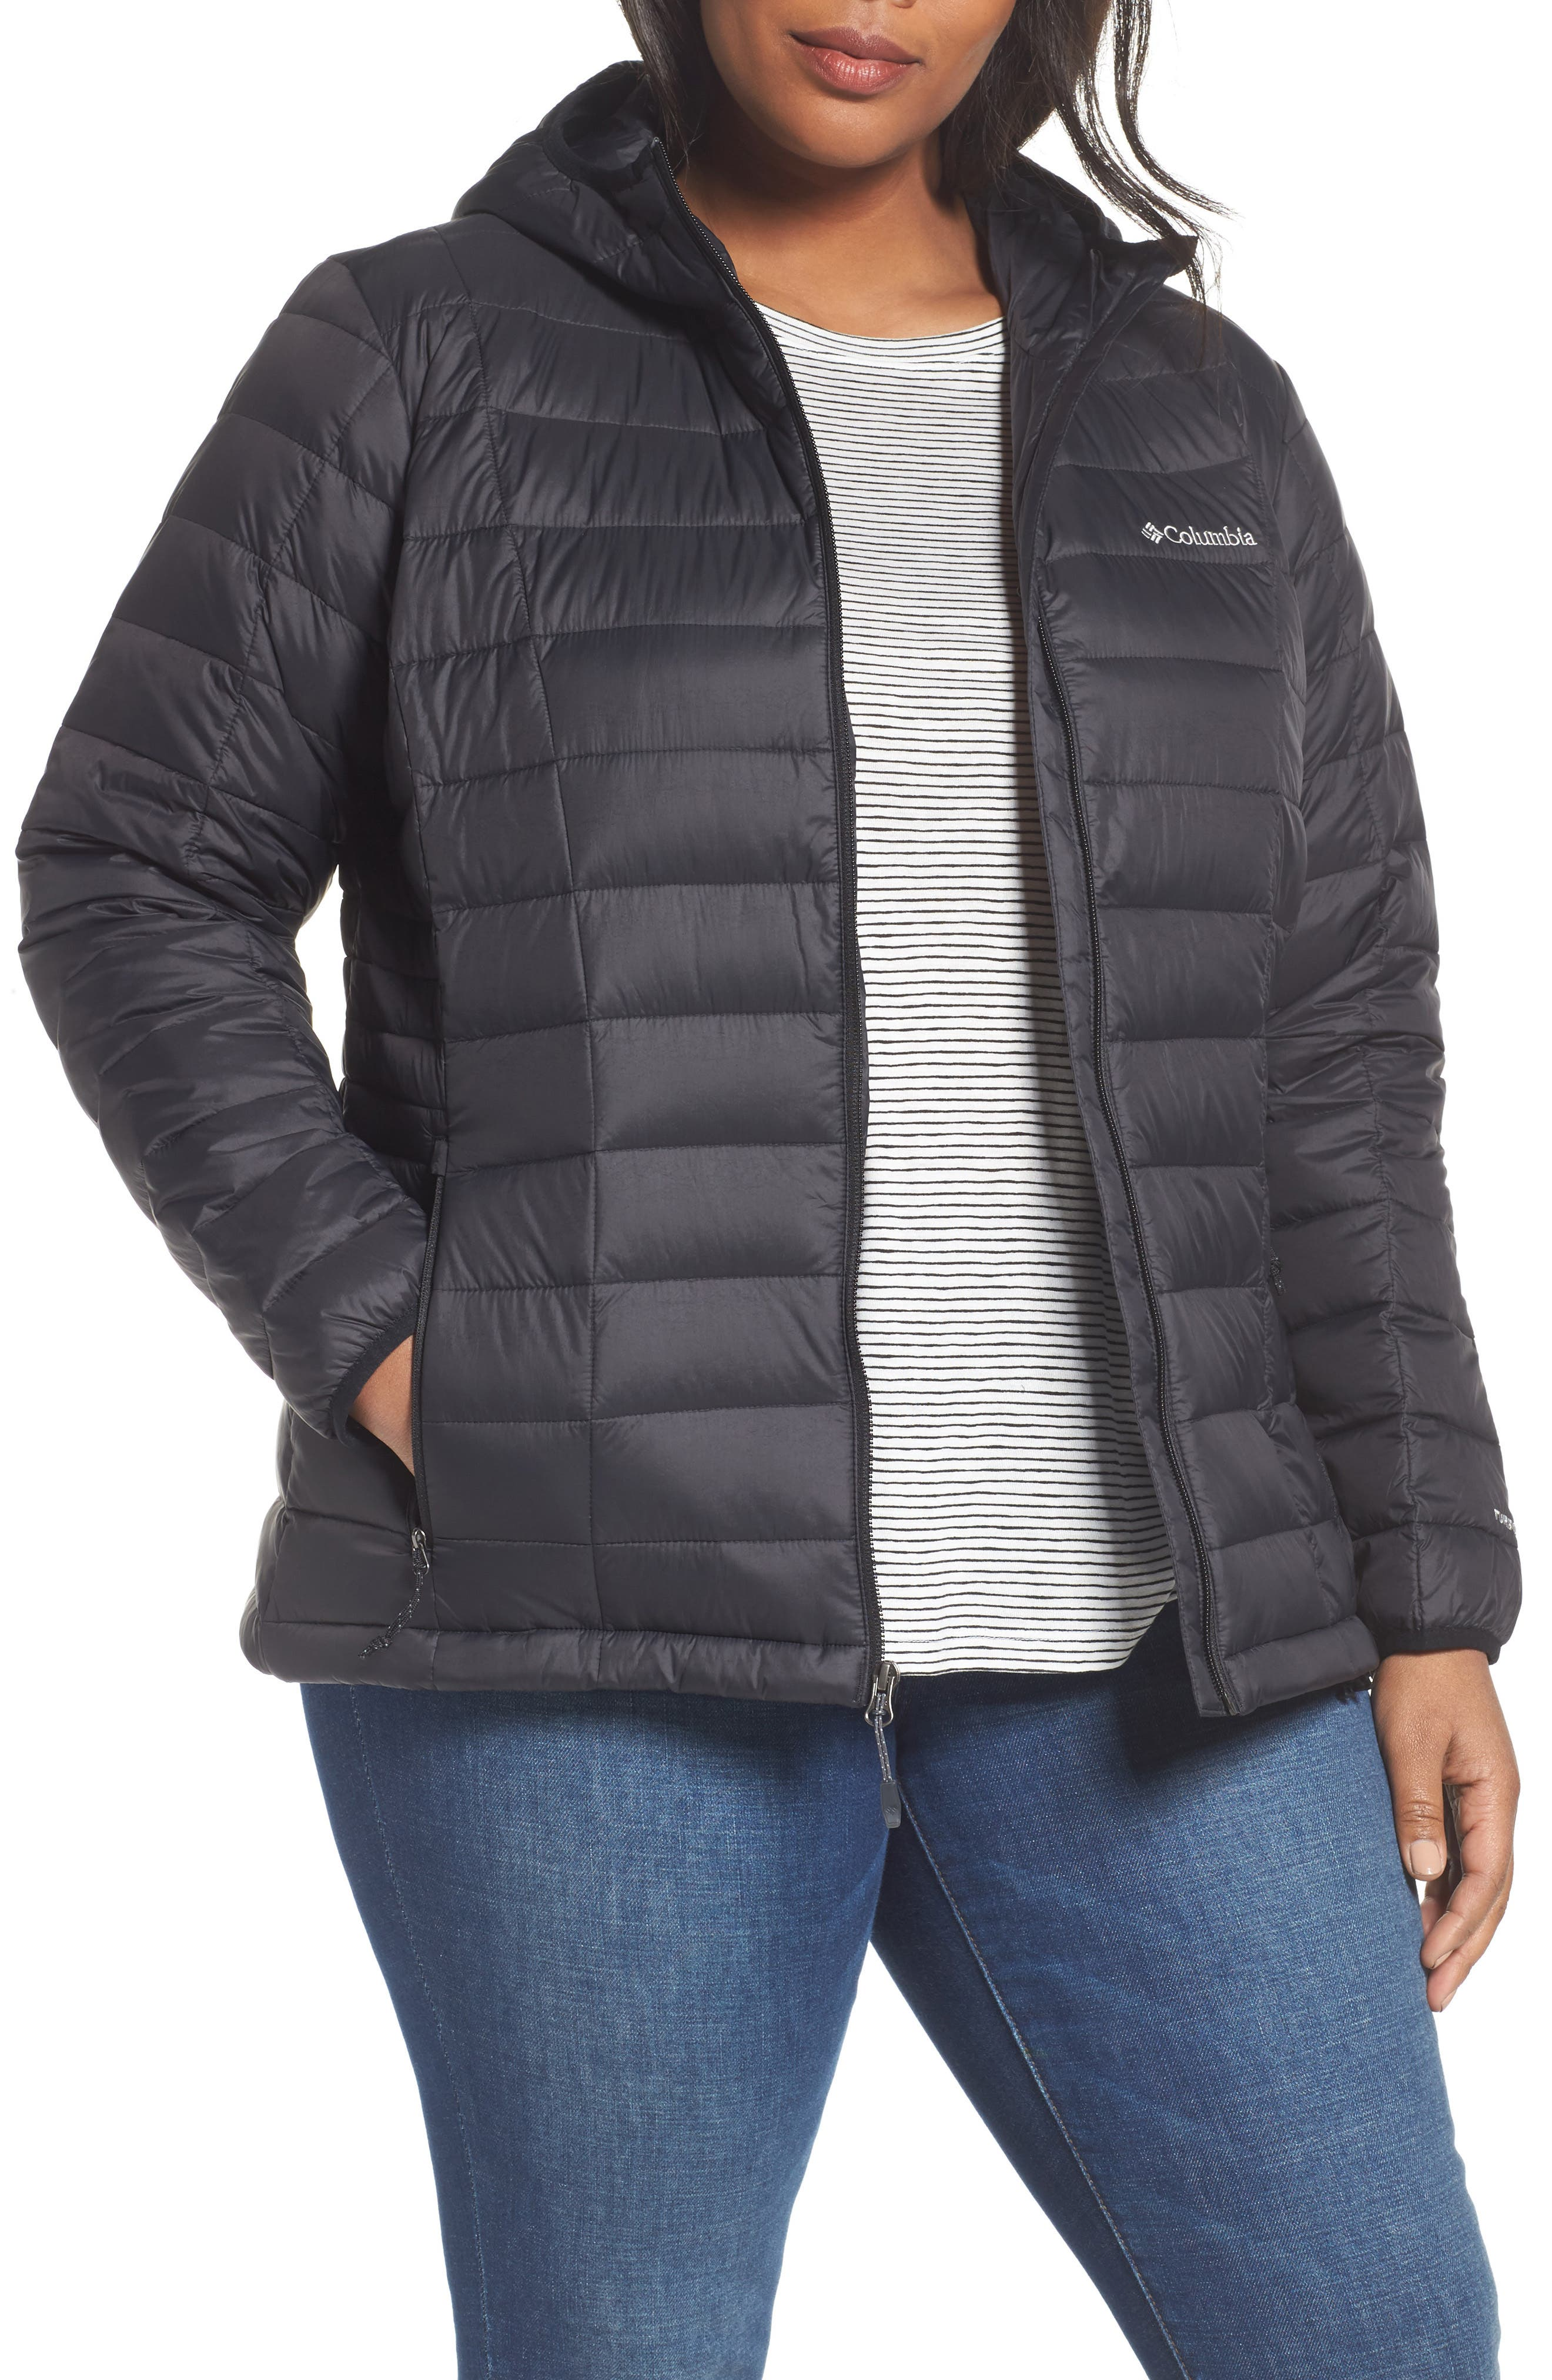 Voodoo Falls 590 Turbodown<sup>™</sup> Down Jacket,                         Main,                         color, 010